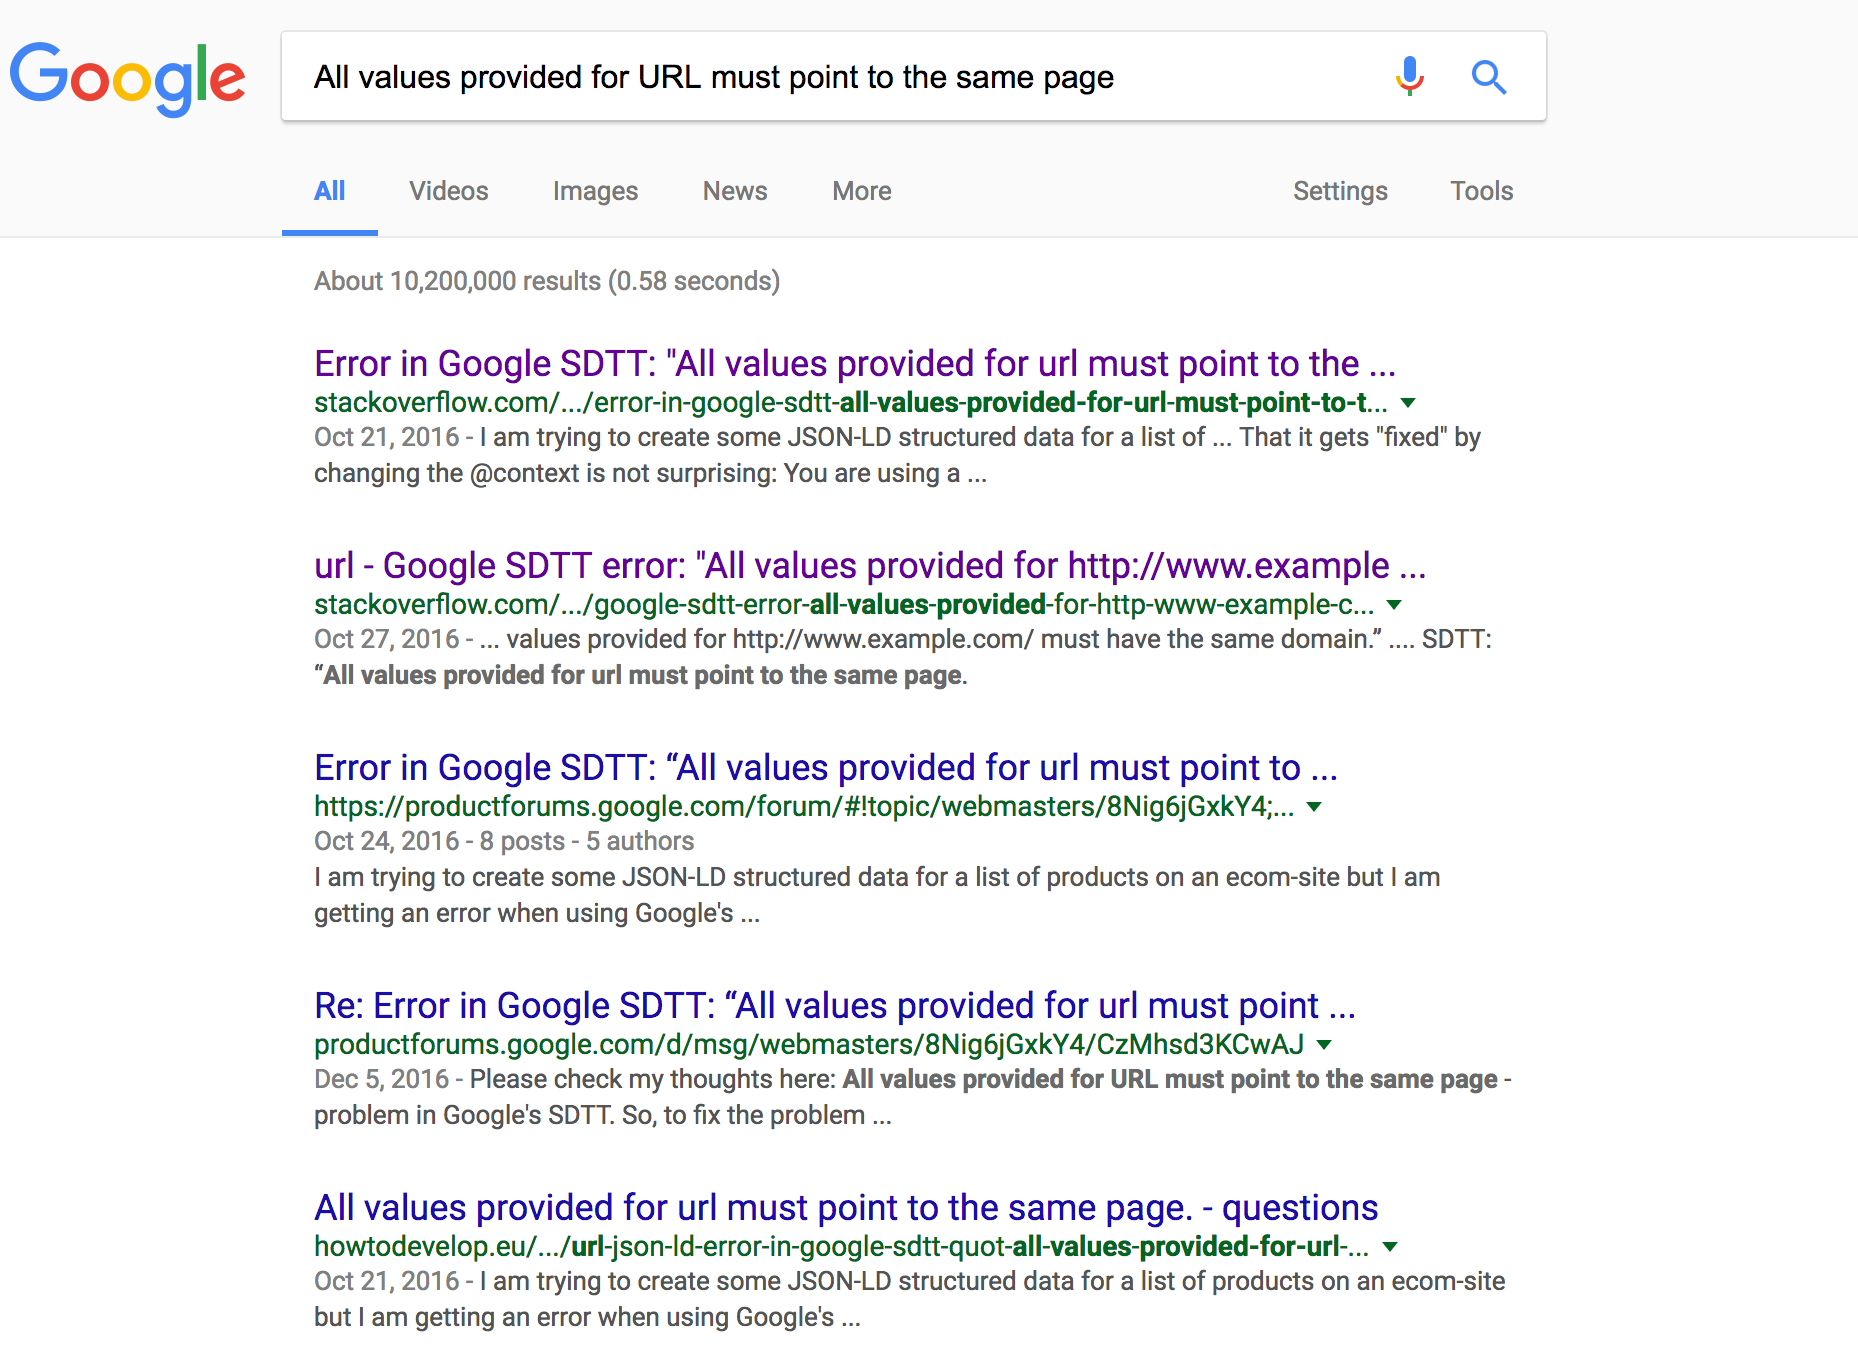 All values provided for URL must point to the same page - Google Search Results ScreenShot